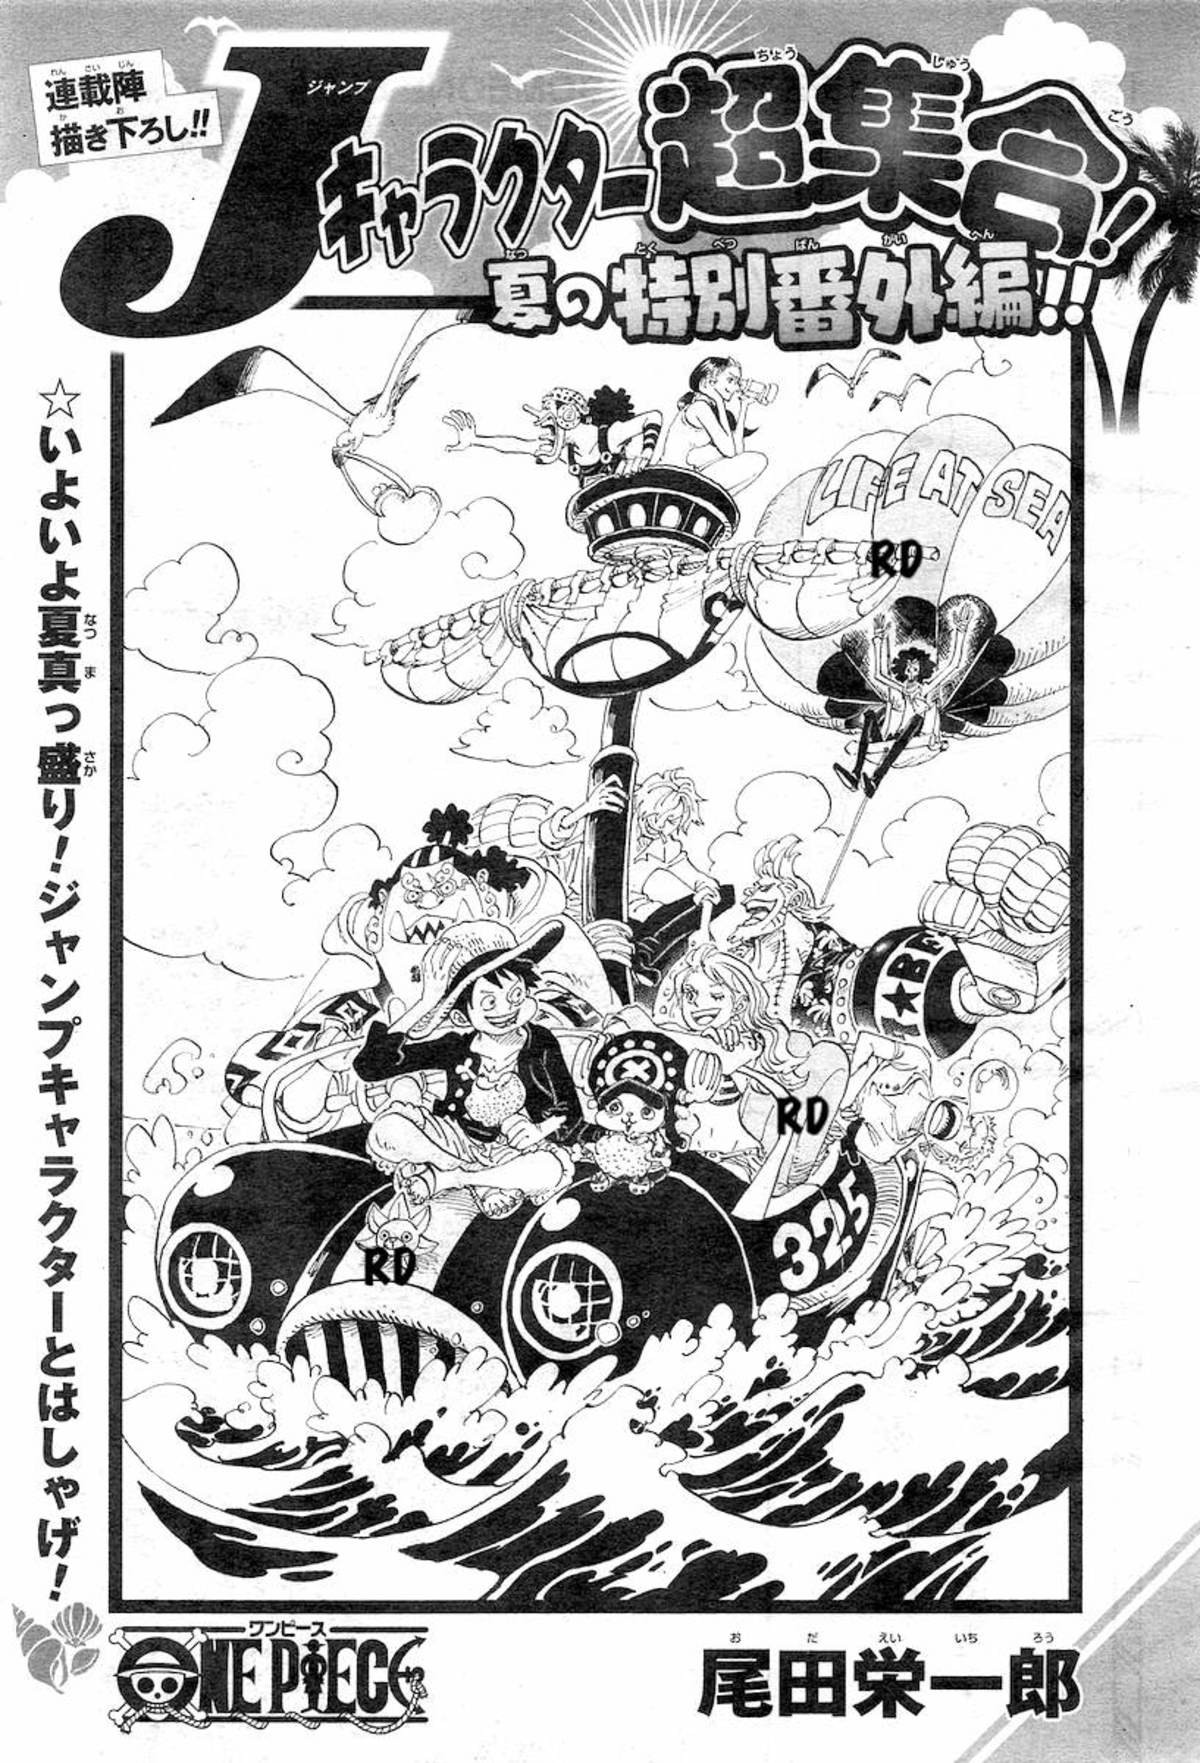 illustration to celebrate Summer. join list: onepiece (236 subs)Mention History.. great spread with jimbe. now we wait for 2 weeks. wano has been one of the best arcs in one piece and im genuinely excited for everything following it. luffy is